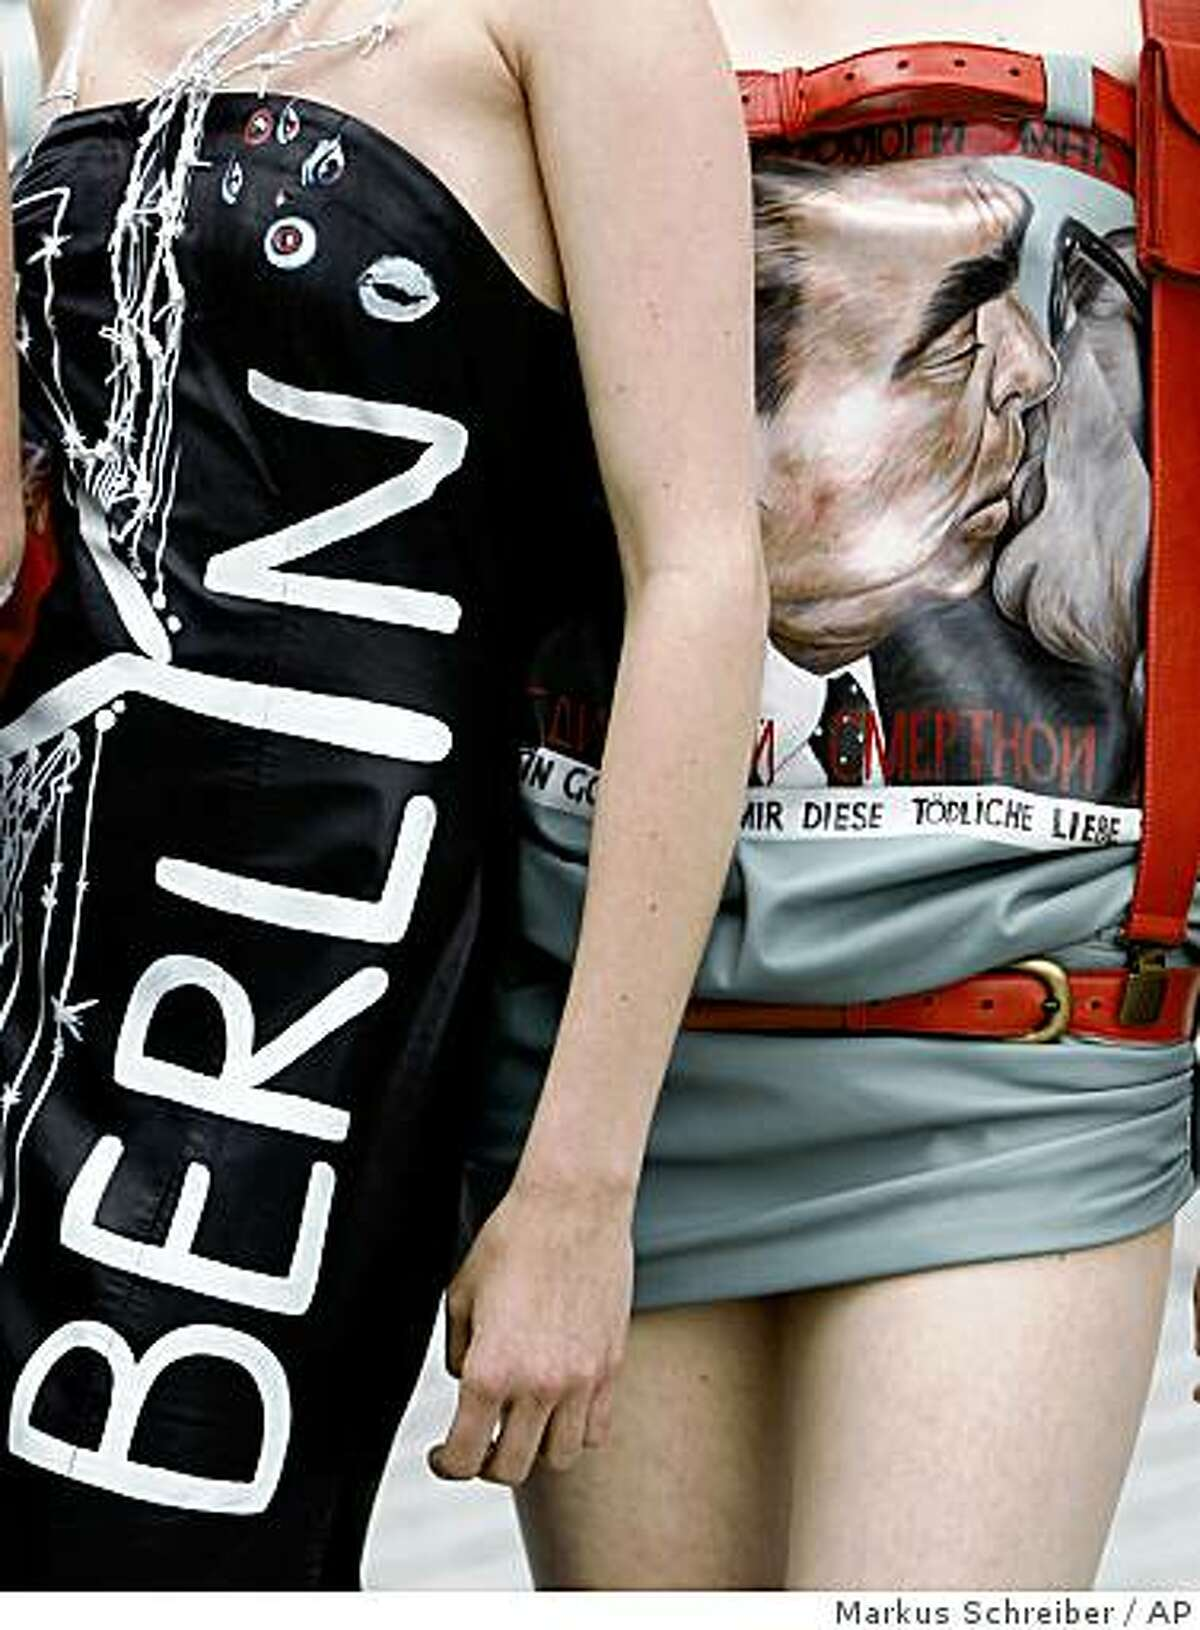 Details of creations by German designer Daniel Rodan with art works from the East Side Gallery in Berlin, including the famous poster of Soviet President Leonid Brezhnev kissing East German Communist leader Erich Hoenecker, as they are presented by model in Berlin, Tuesday, June 9, 2009. A total of 118 artists from 21 countries created the paintings of the so named East Side Gallery, a 1.3 kilometer-long section of the Berlin Wall established in 1990 in the Friedrichshain district of Berlin. (AP Photo/Markus Schreiber)